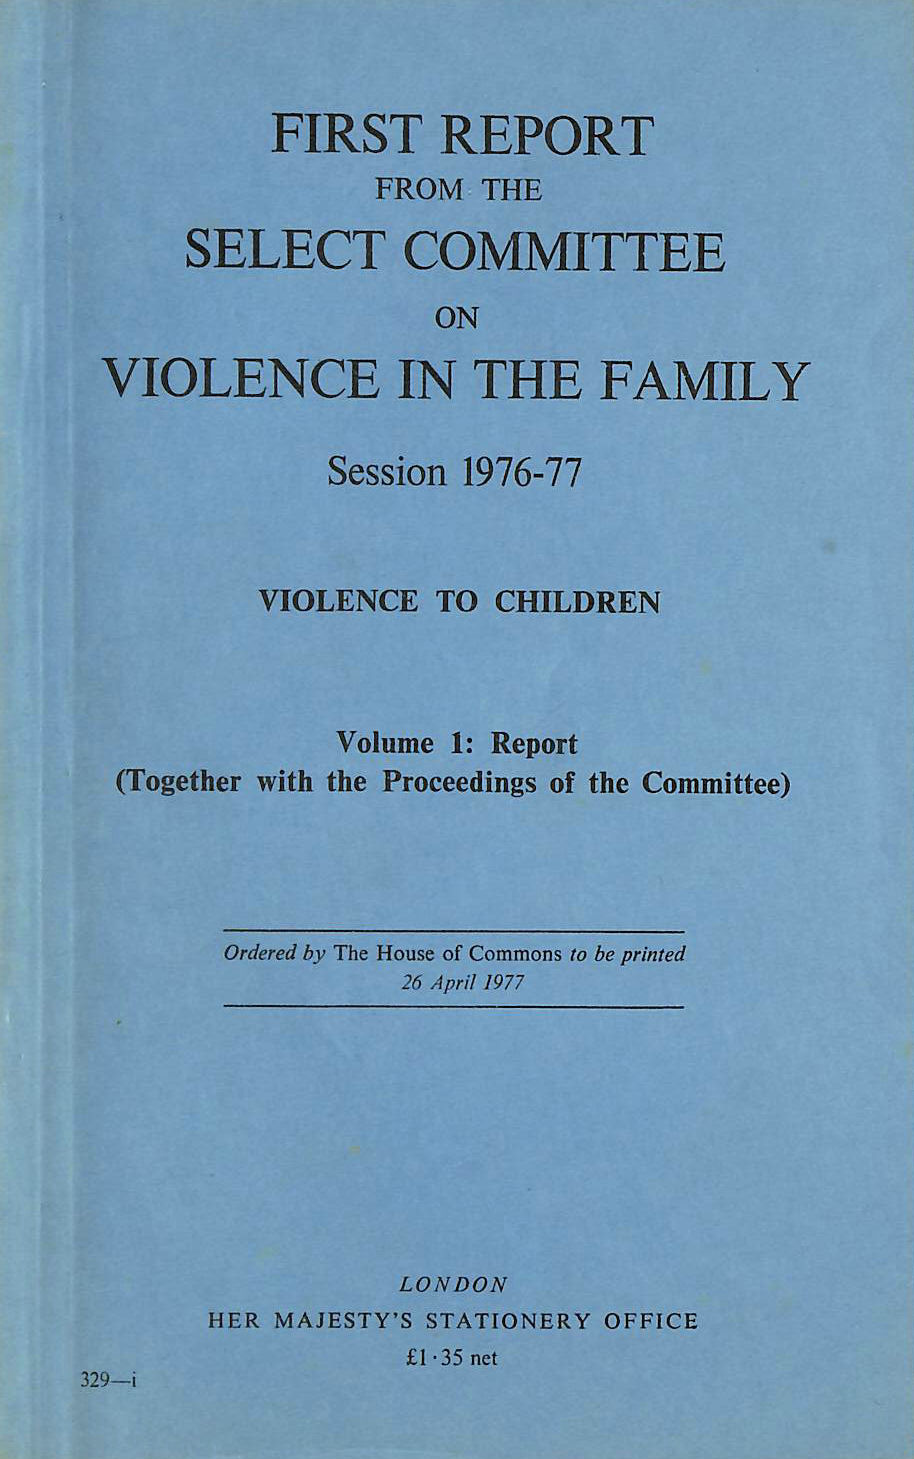 Image for First Report from the Select Committee on Violence in the Family, Session 1976 - 77: Violence to Children, Vol 1: Report (together with the Proceedings of the Committee).